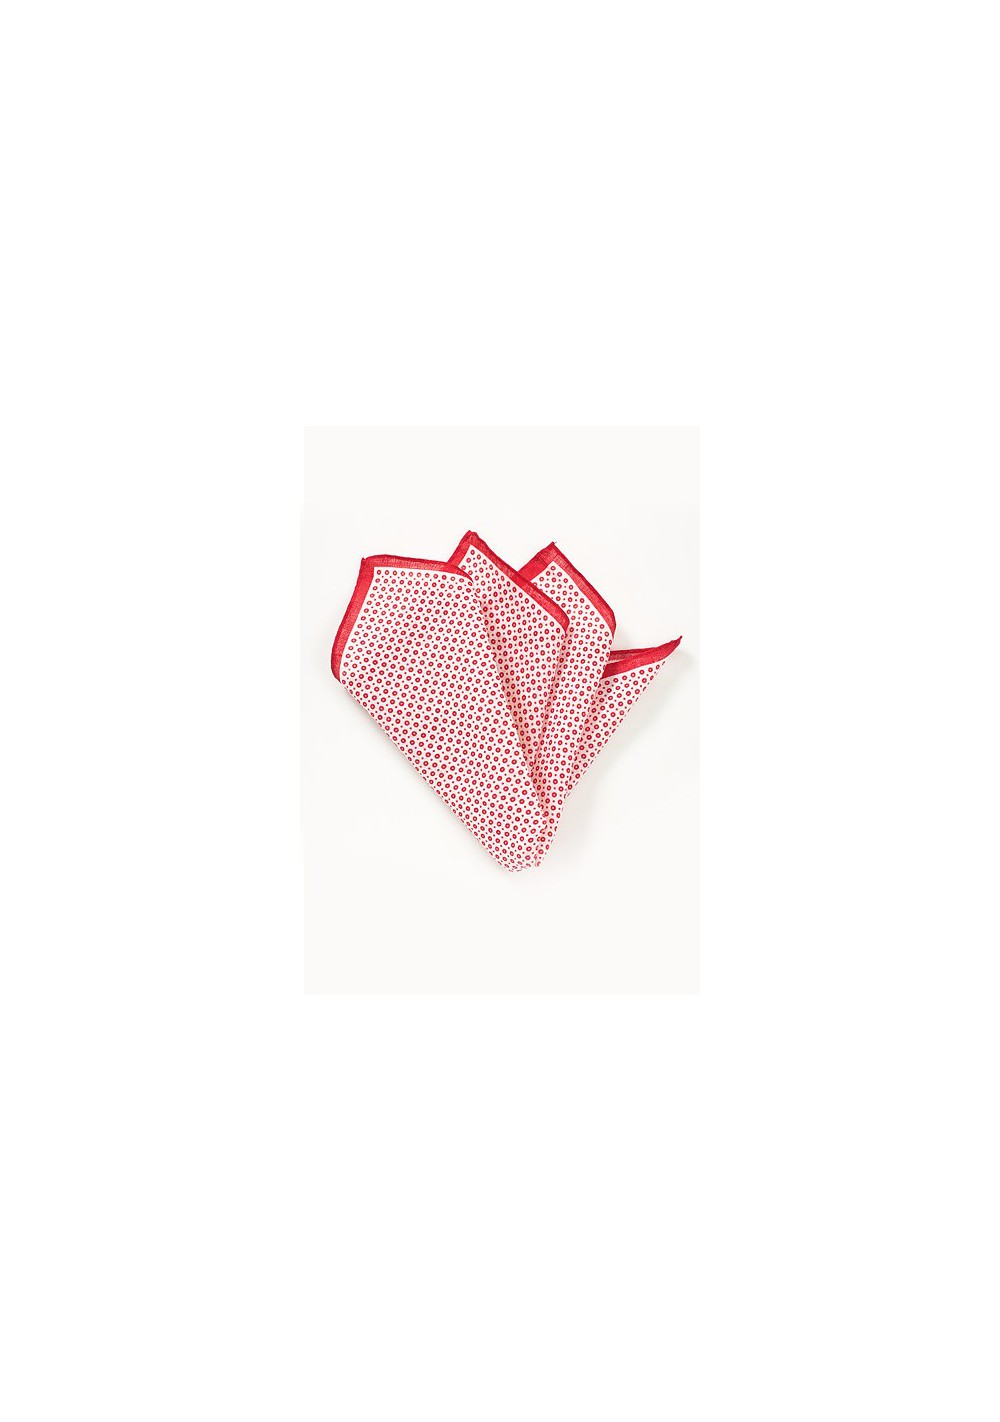 Linen Pocket Square in Red and White